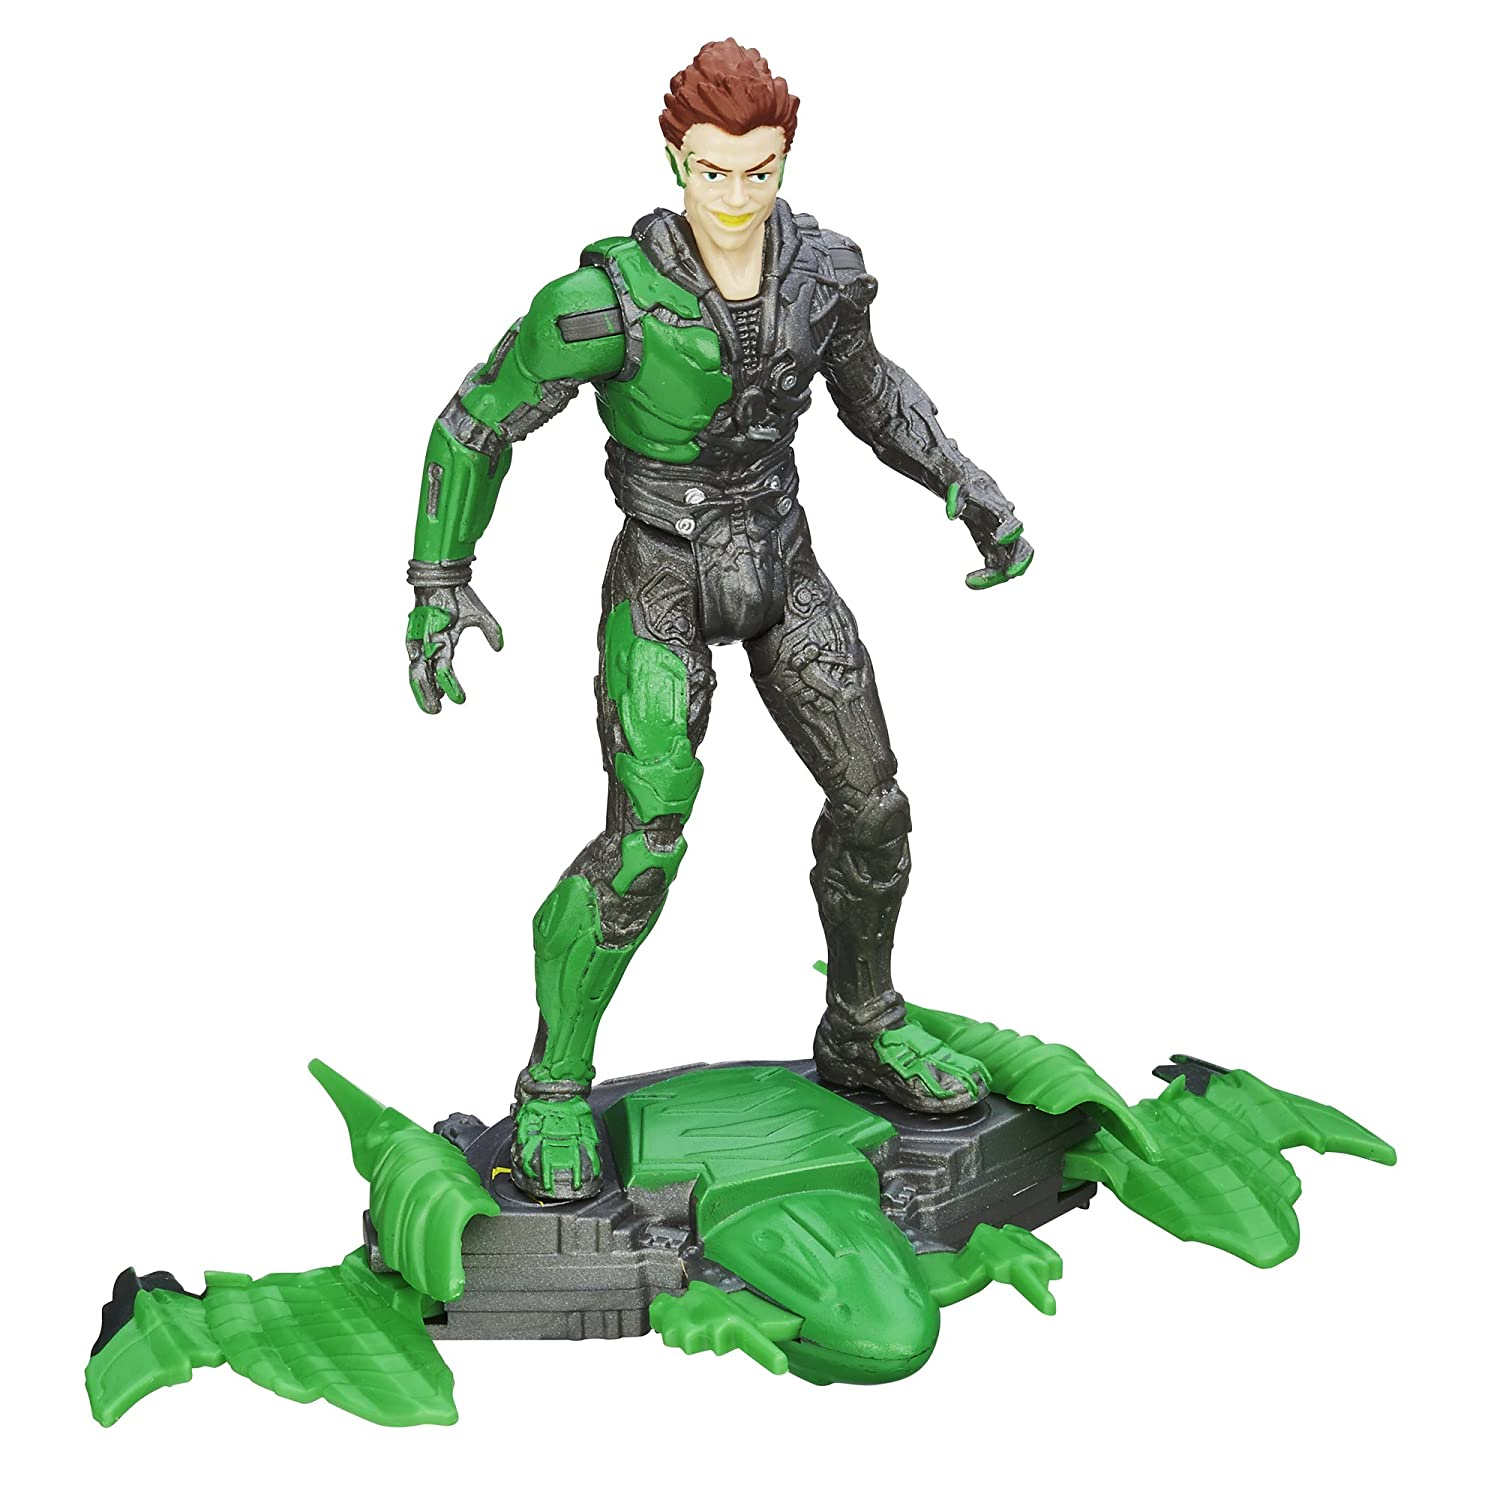 Marvel, The Amazing Spider-Man 2 Movie Action Figure, Air Raid Green Goblin, 3.75 Inches by Spider-Man